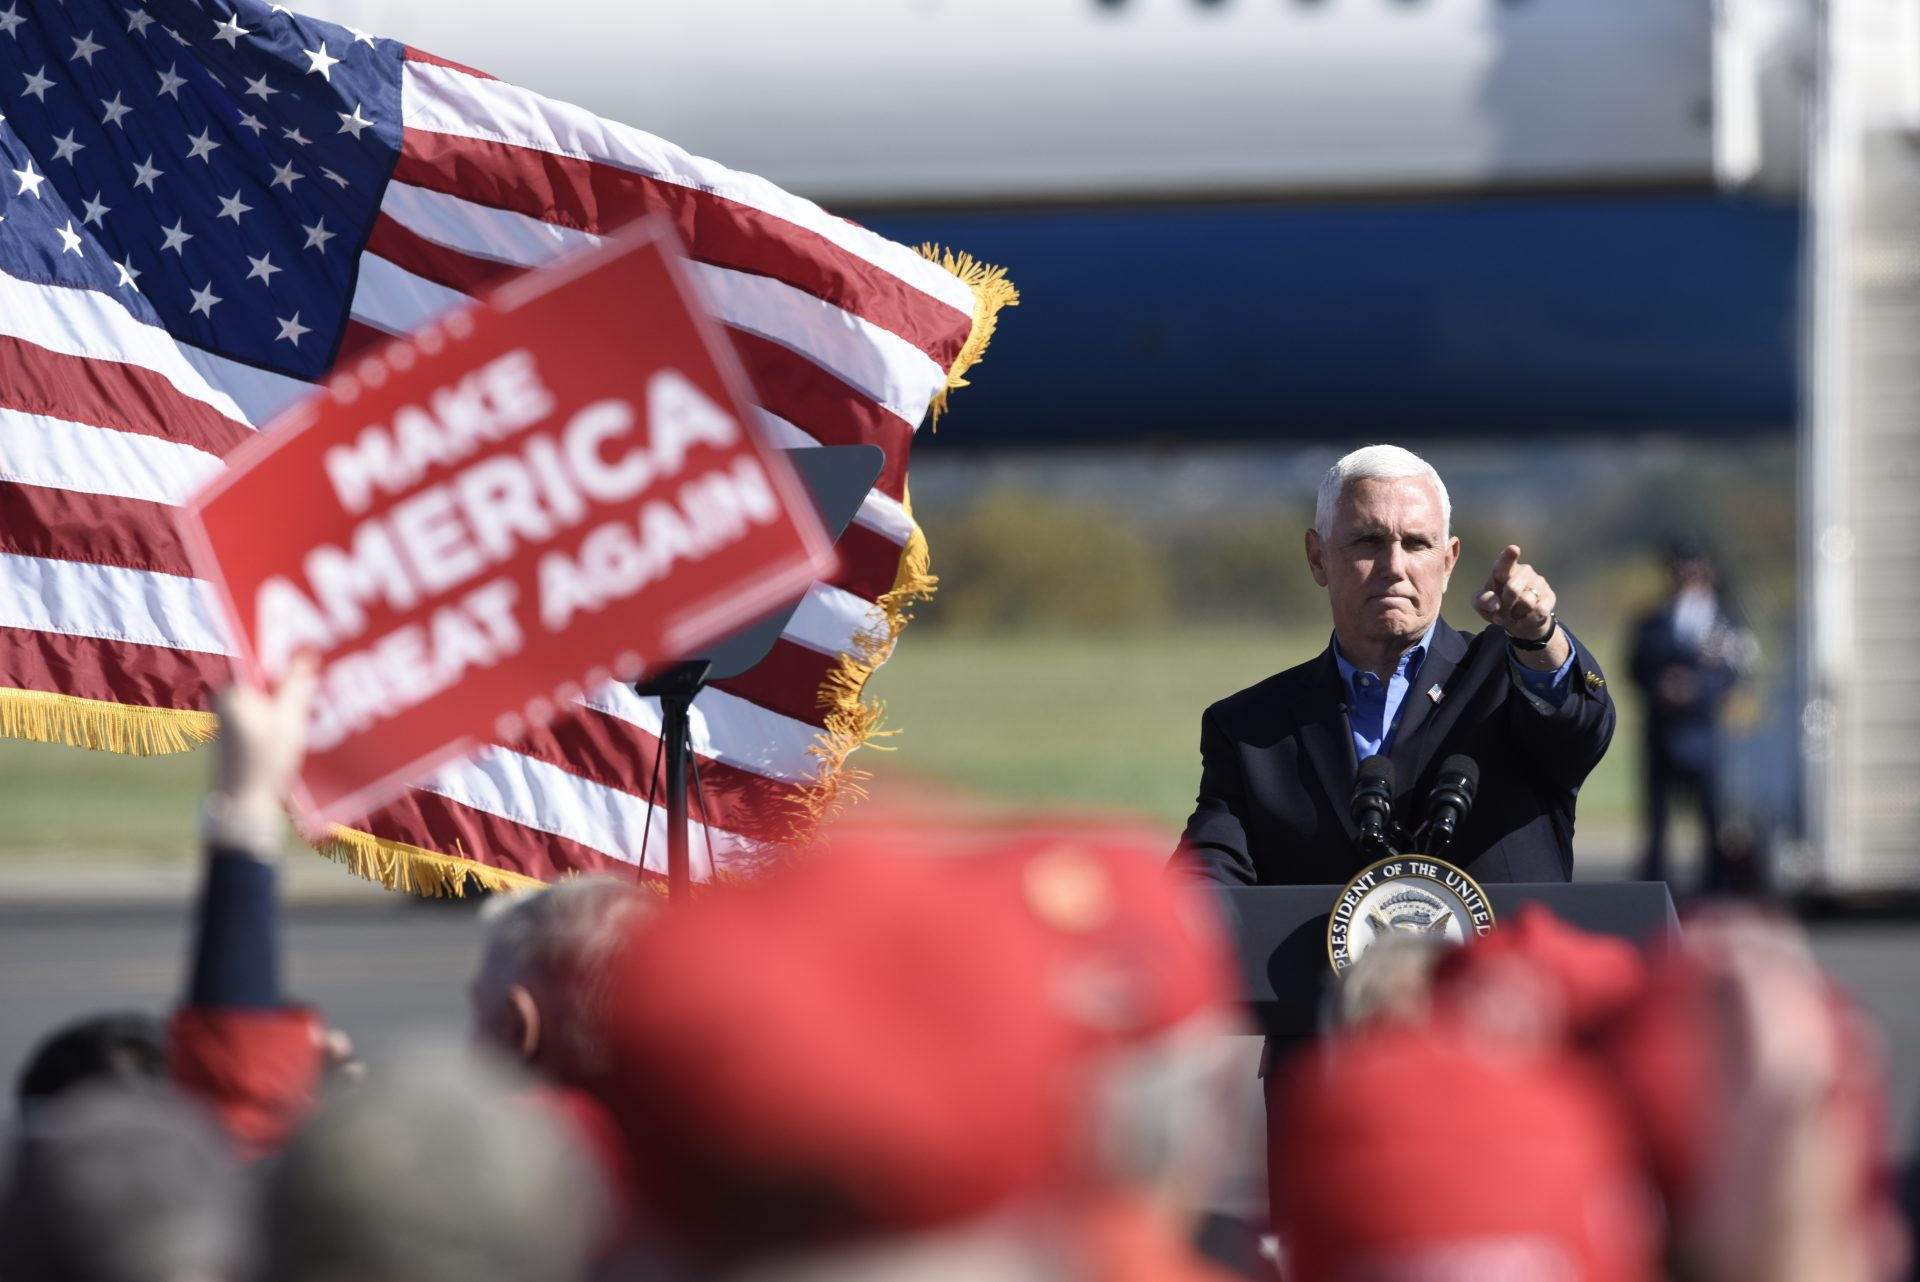 Vice President Mike Pence speaks at a campaign rally held at the Reading Regional Airport, Saturday, Oct. 17, 2020, in Reading, Pa.